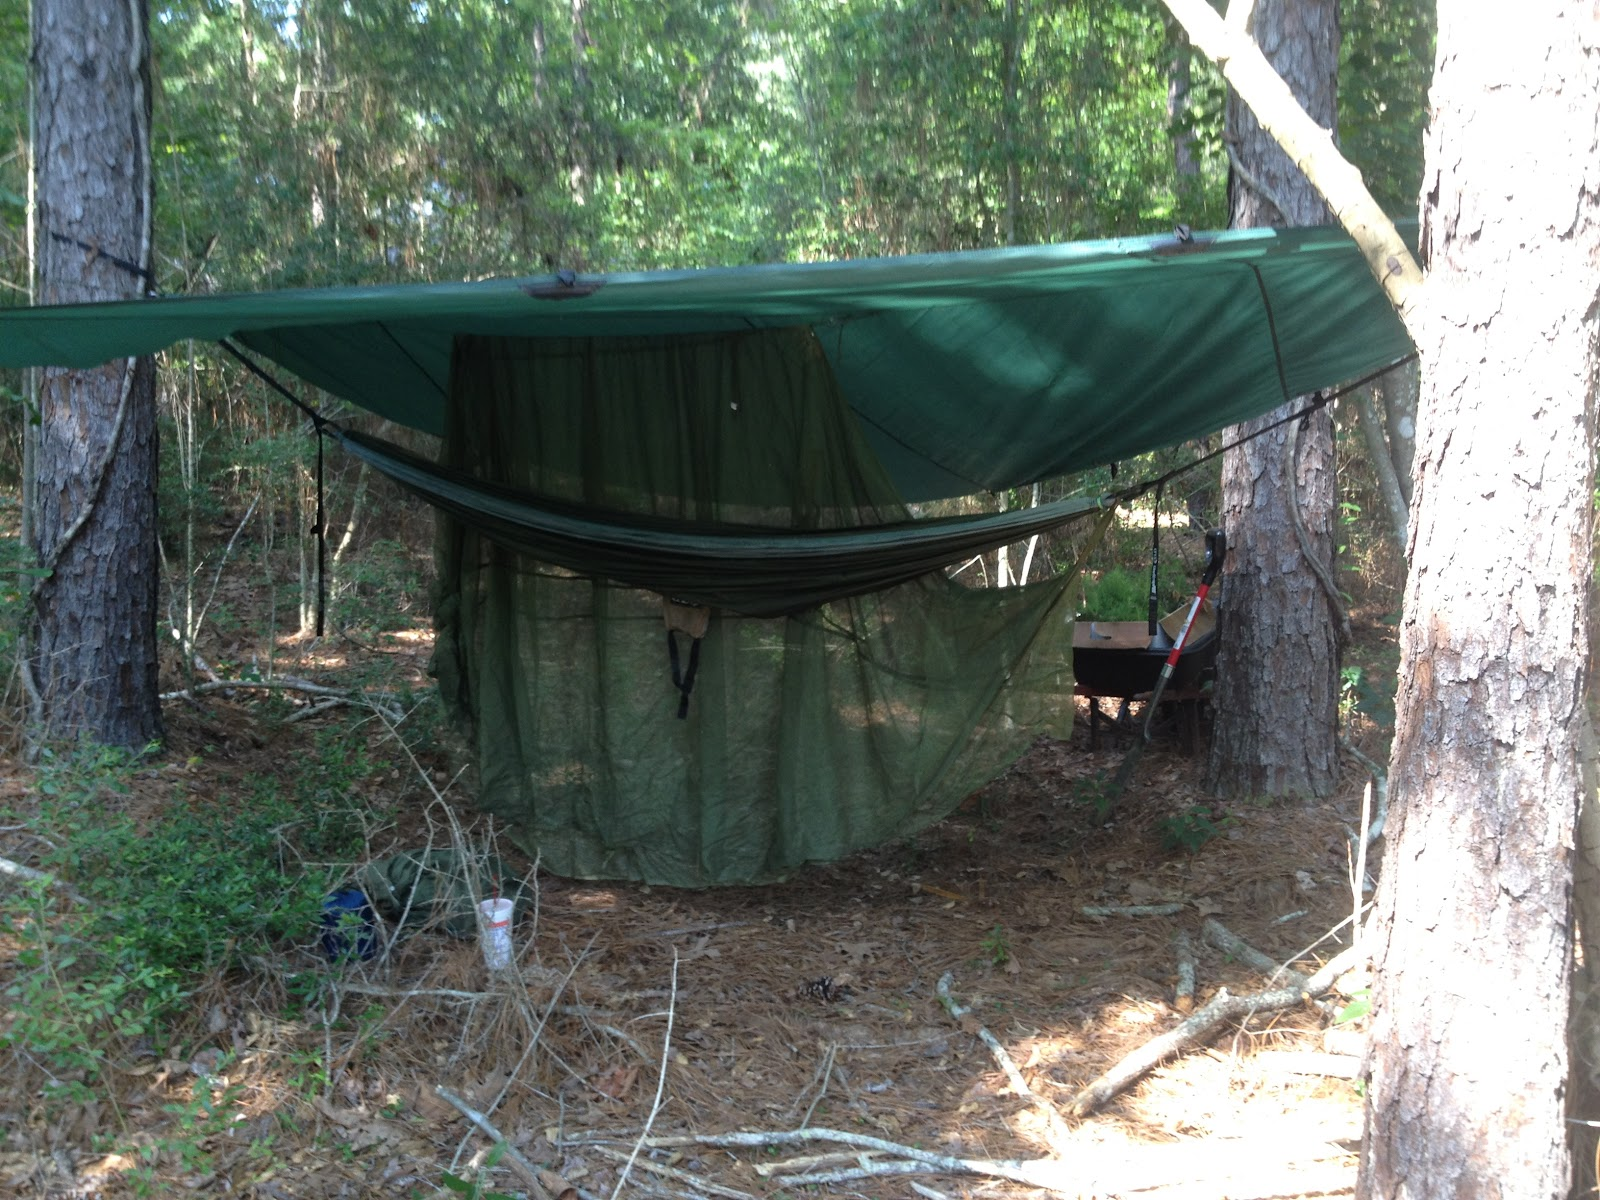 expedition review of shoulders zip asym army giants hennessy us gear hammock